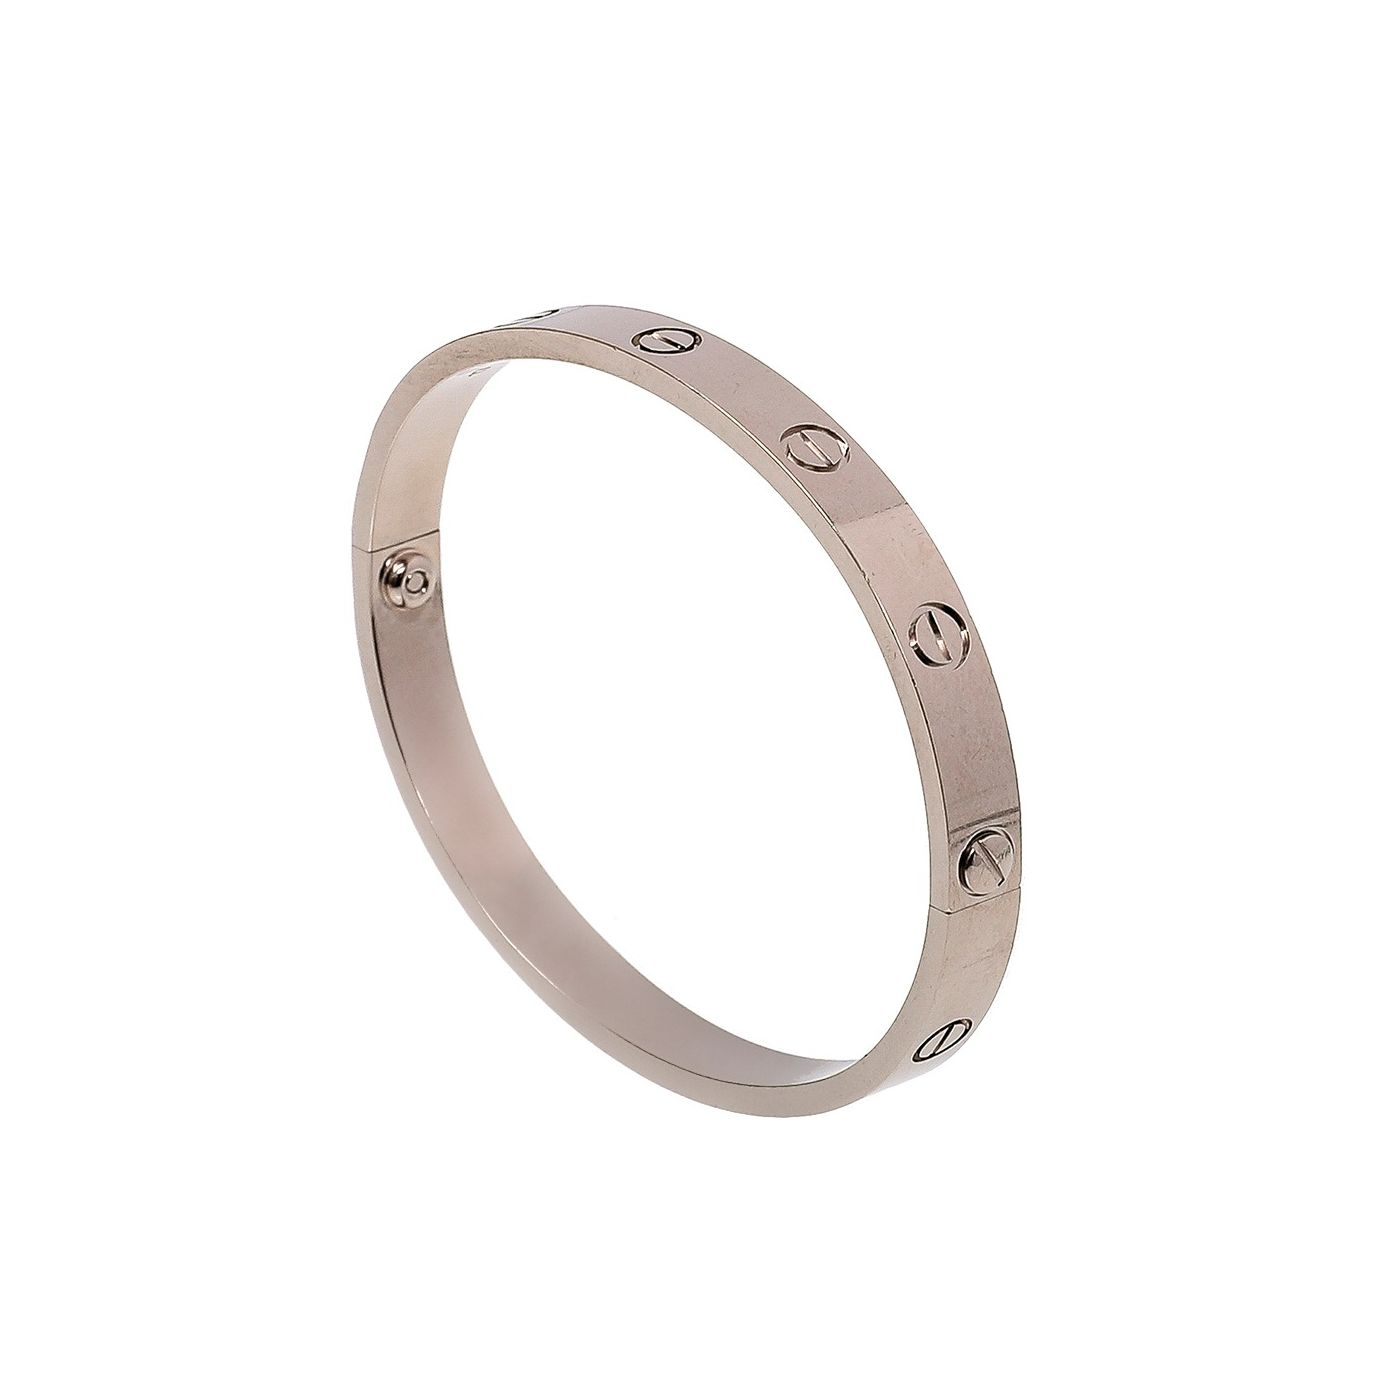 Cartier 18K White Gold Love Bracelet 17